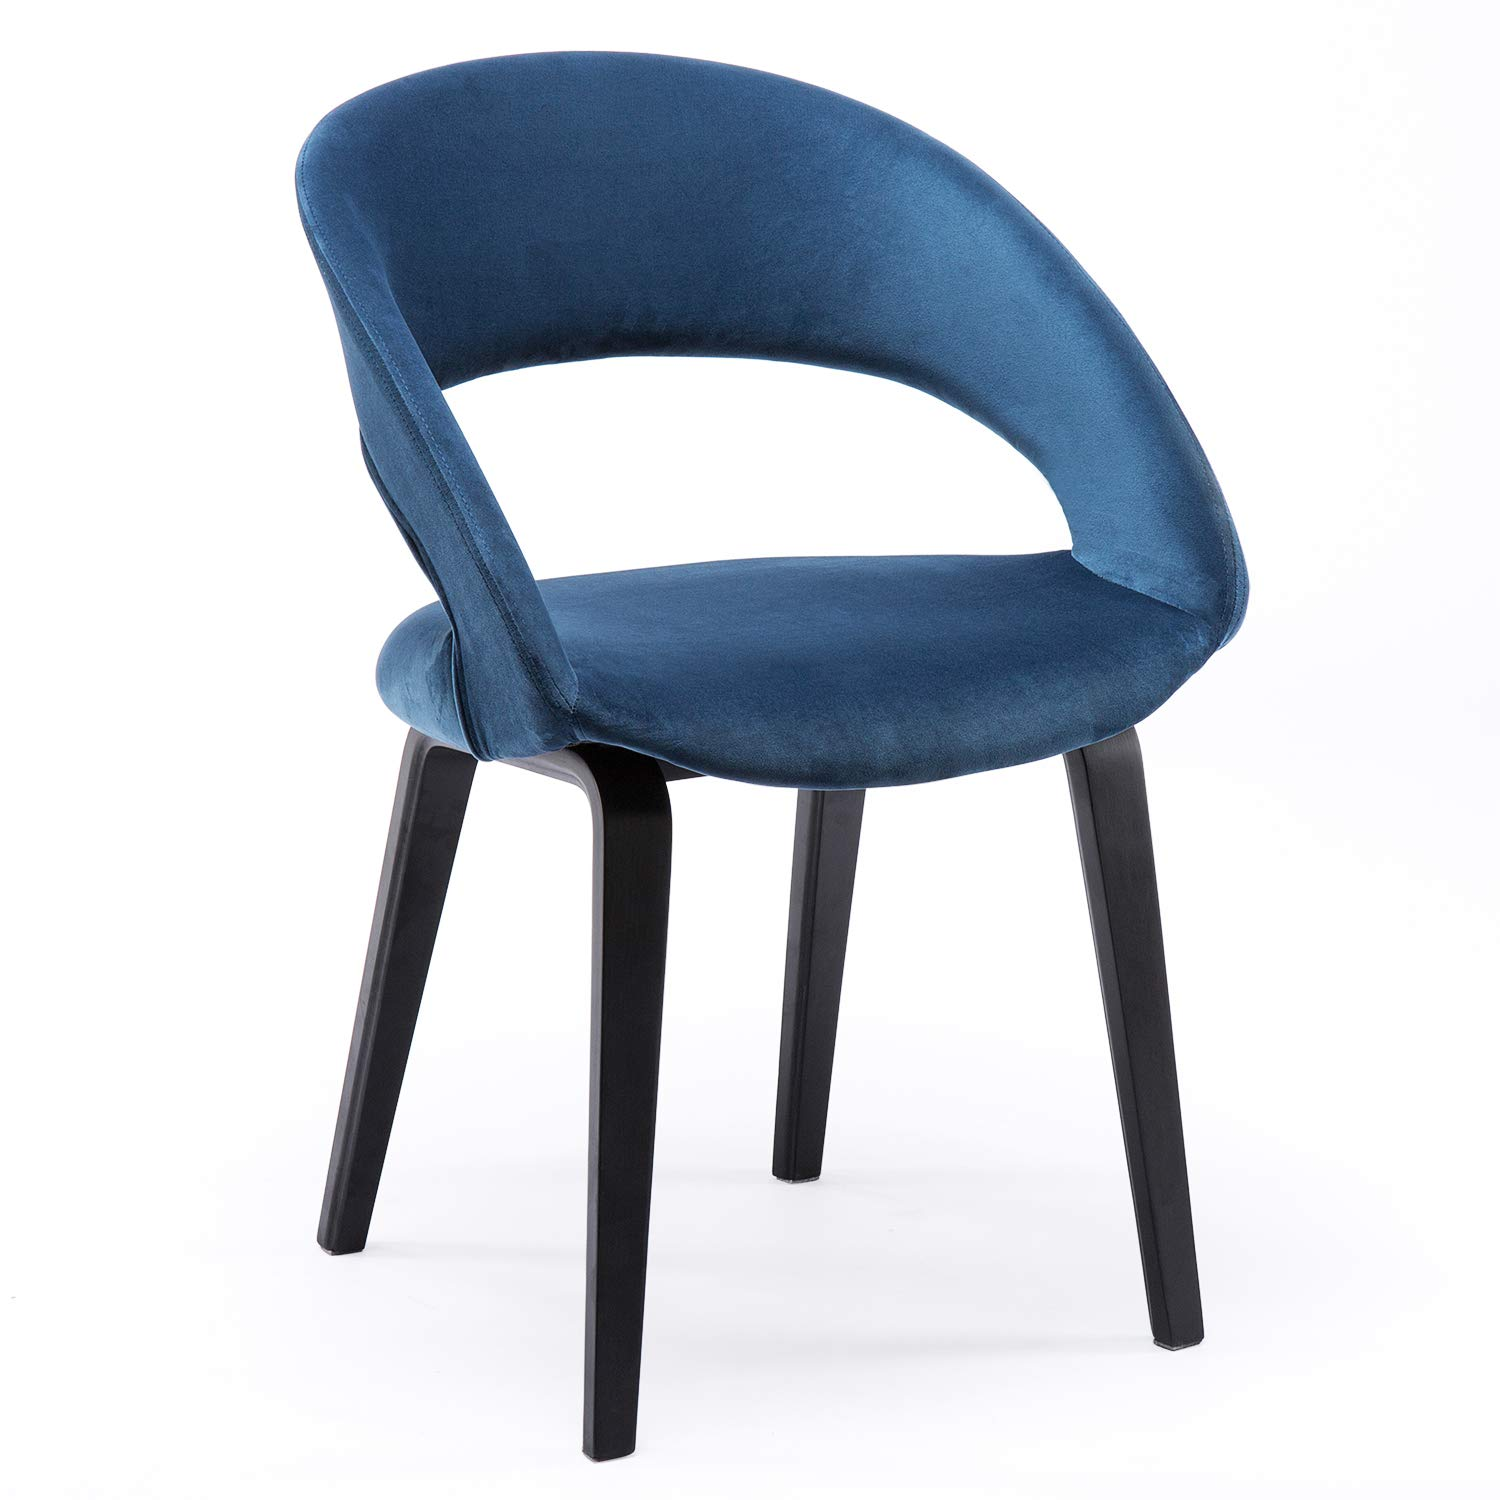 YIMIGA Dining Chair Open Back - Blue Mid Century Modern ...